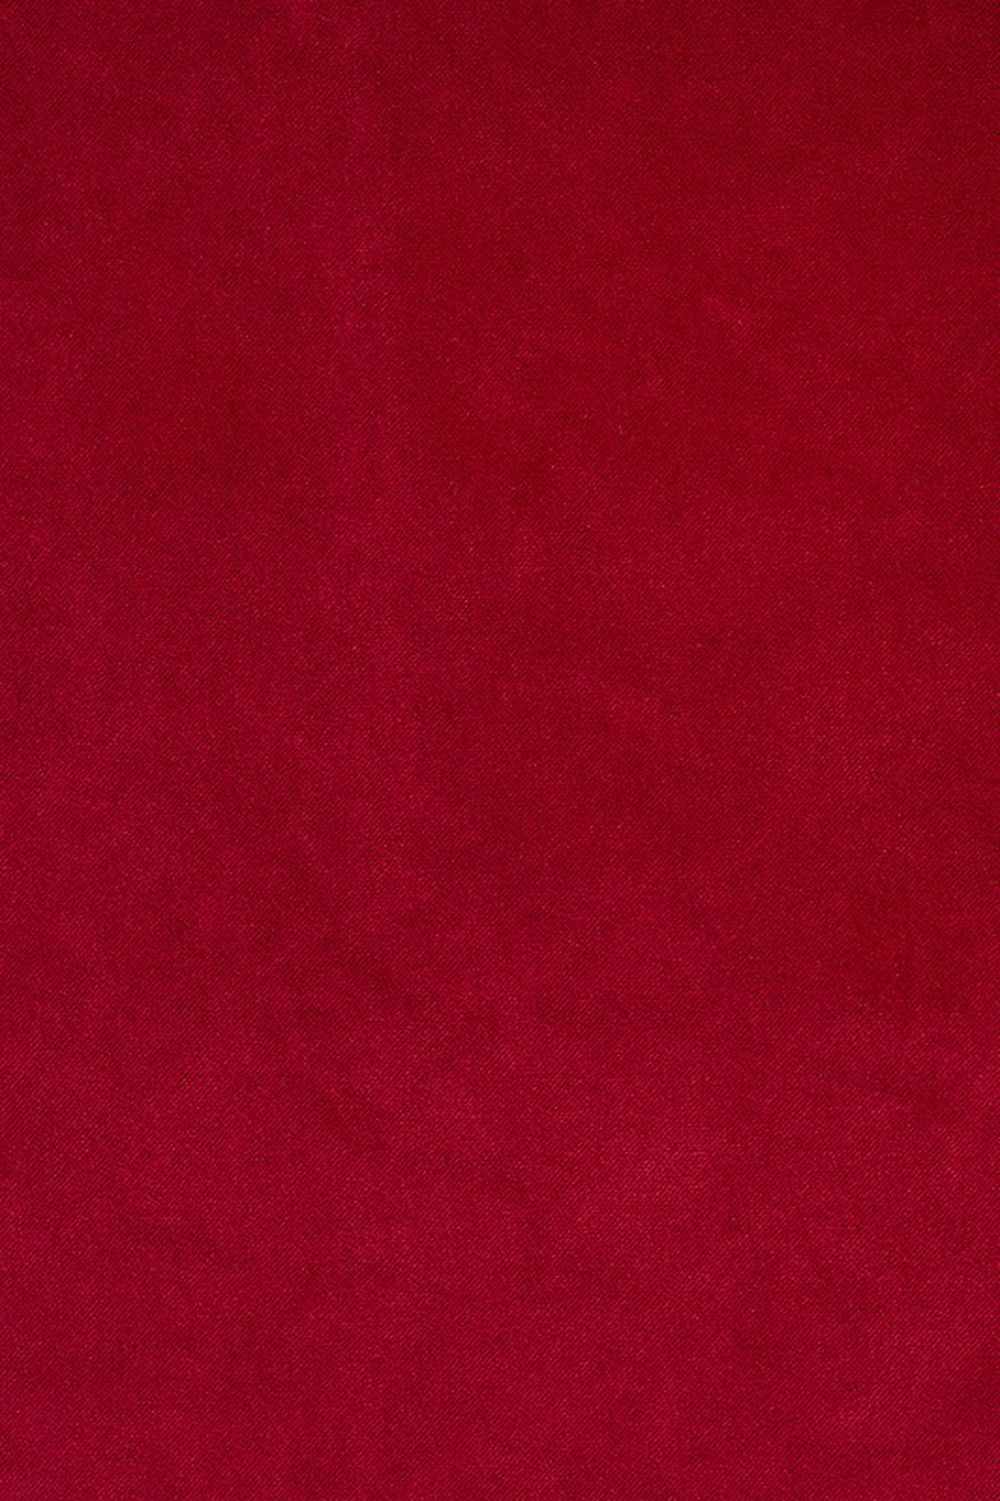 Photo of the fabric Palacio FR Ruby swatch by James Dunlop. Use for Curtains, Upholstery Heavy Duty, Accessory. Style of Plain, Velvet